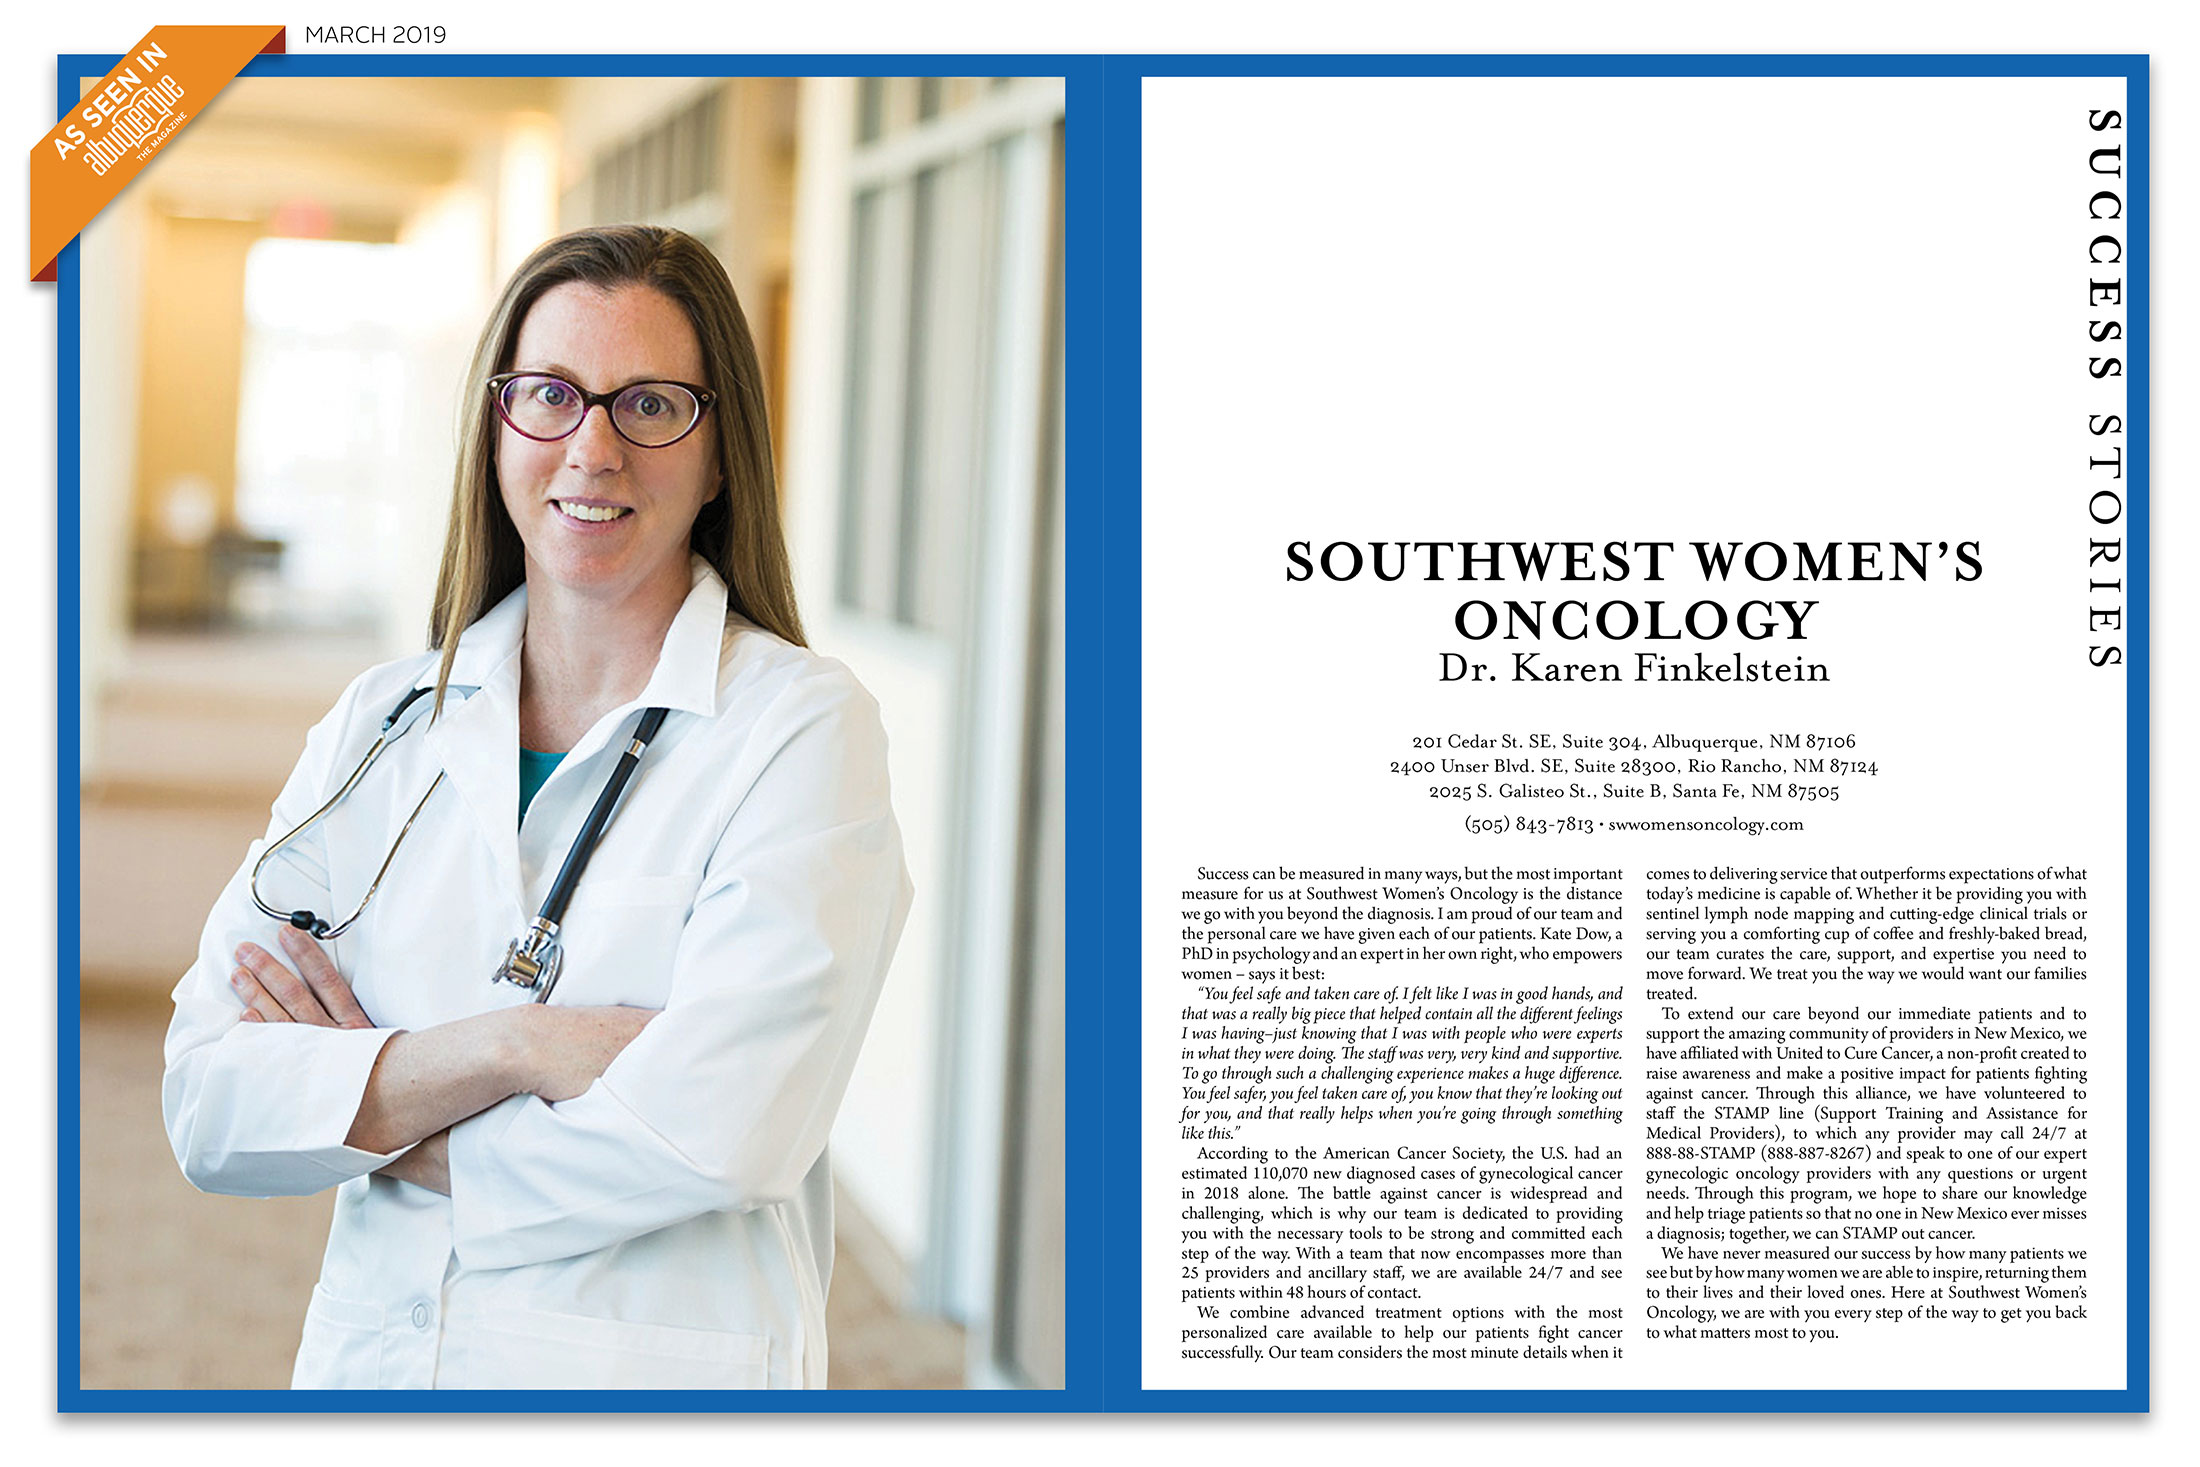 southwest womens oncology treats womens cancer with compassion